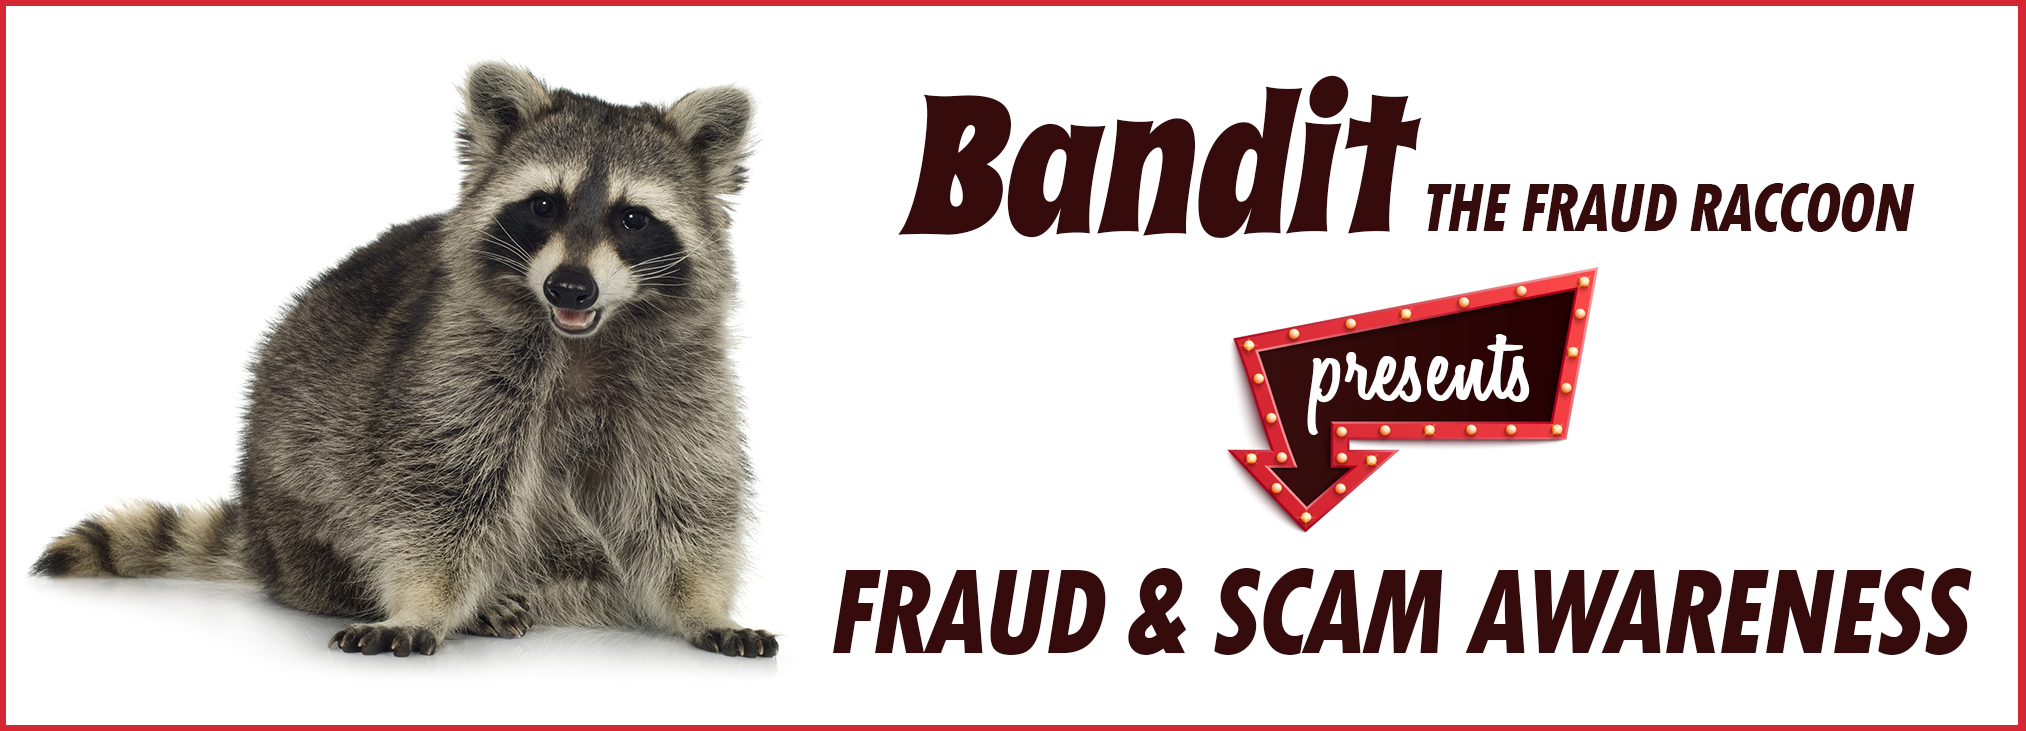 Bandit the Fraud Raccoon presents fraud and scam awareness